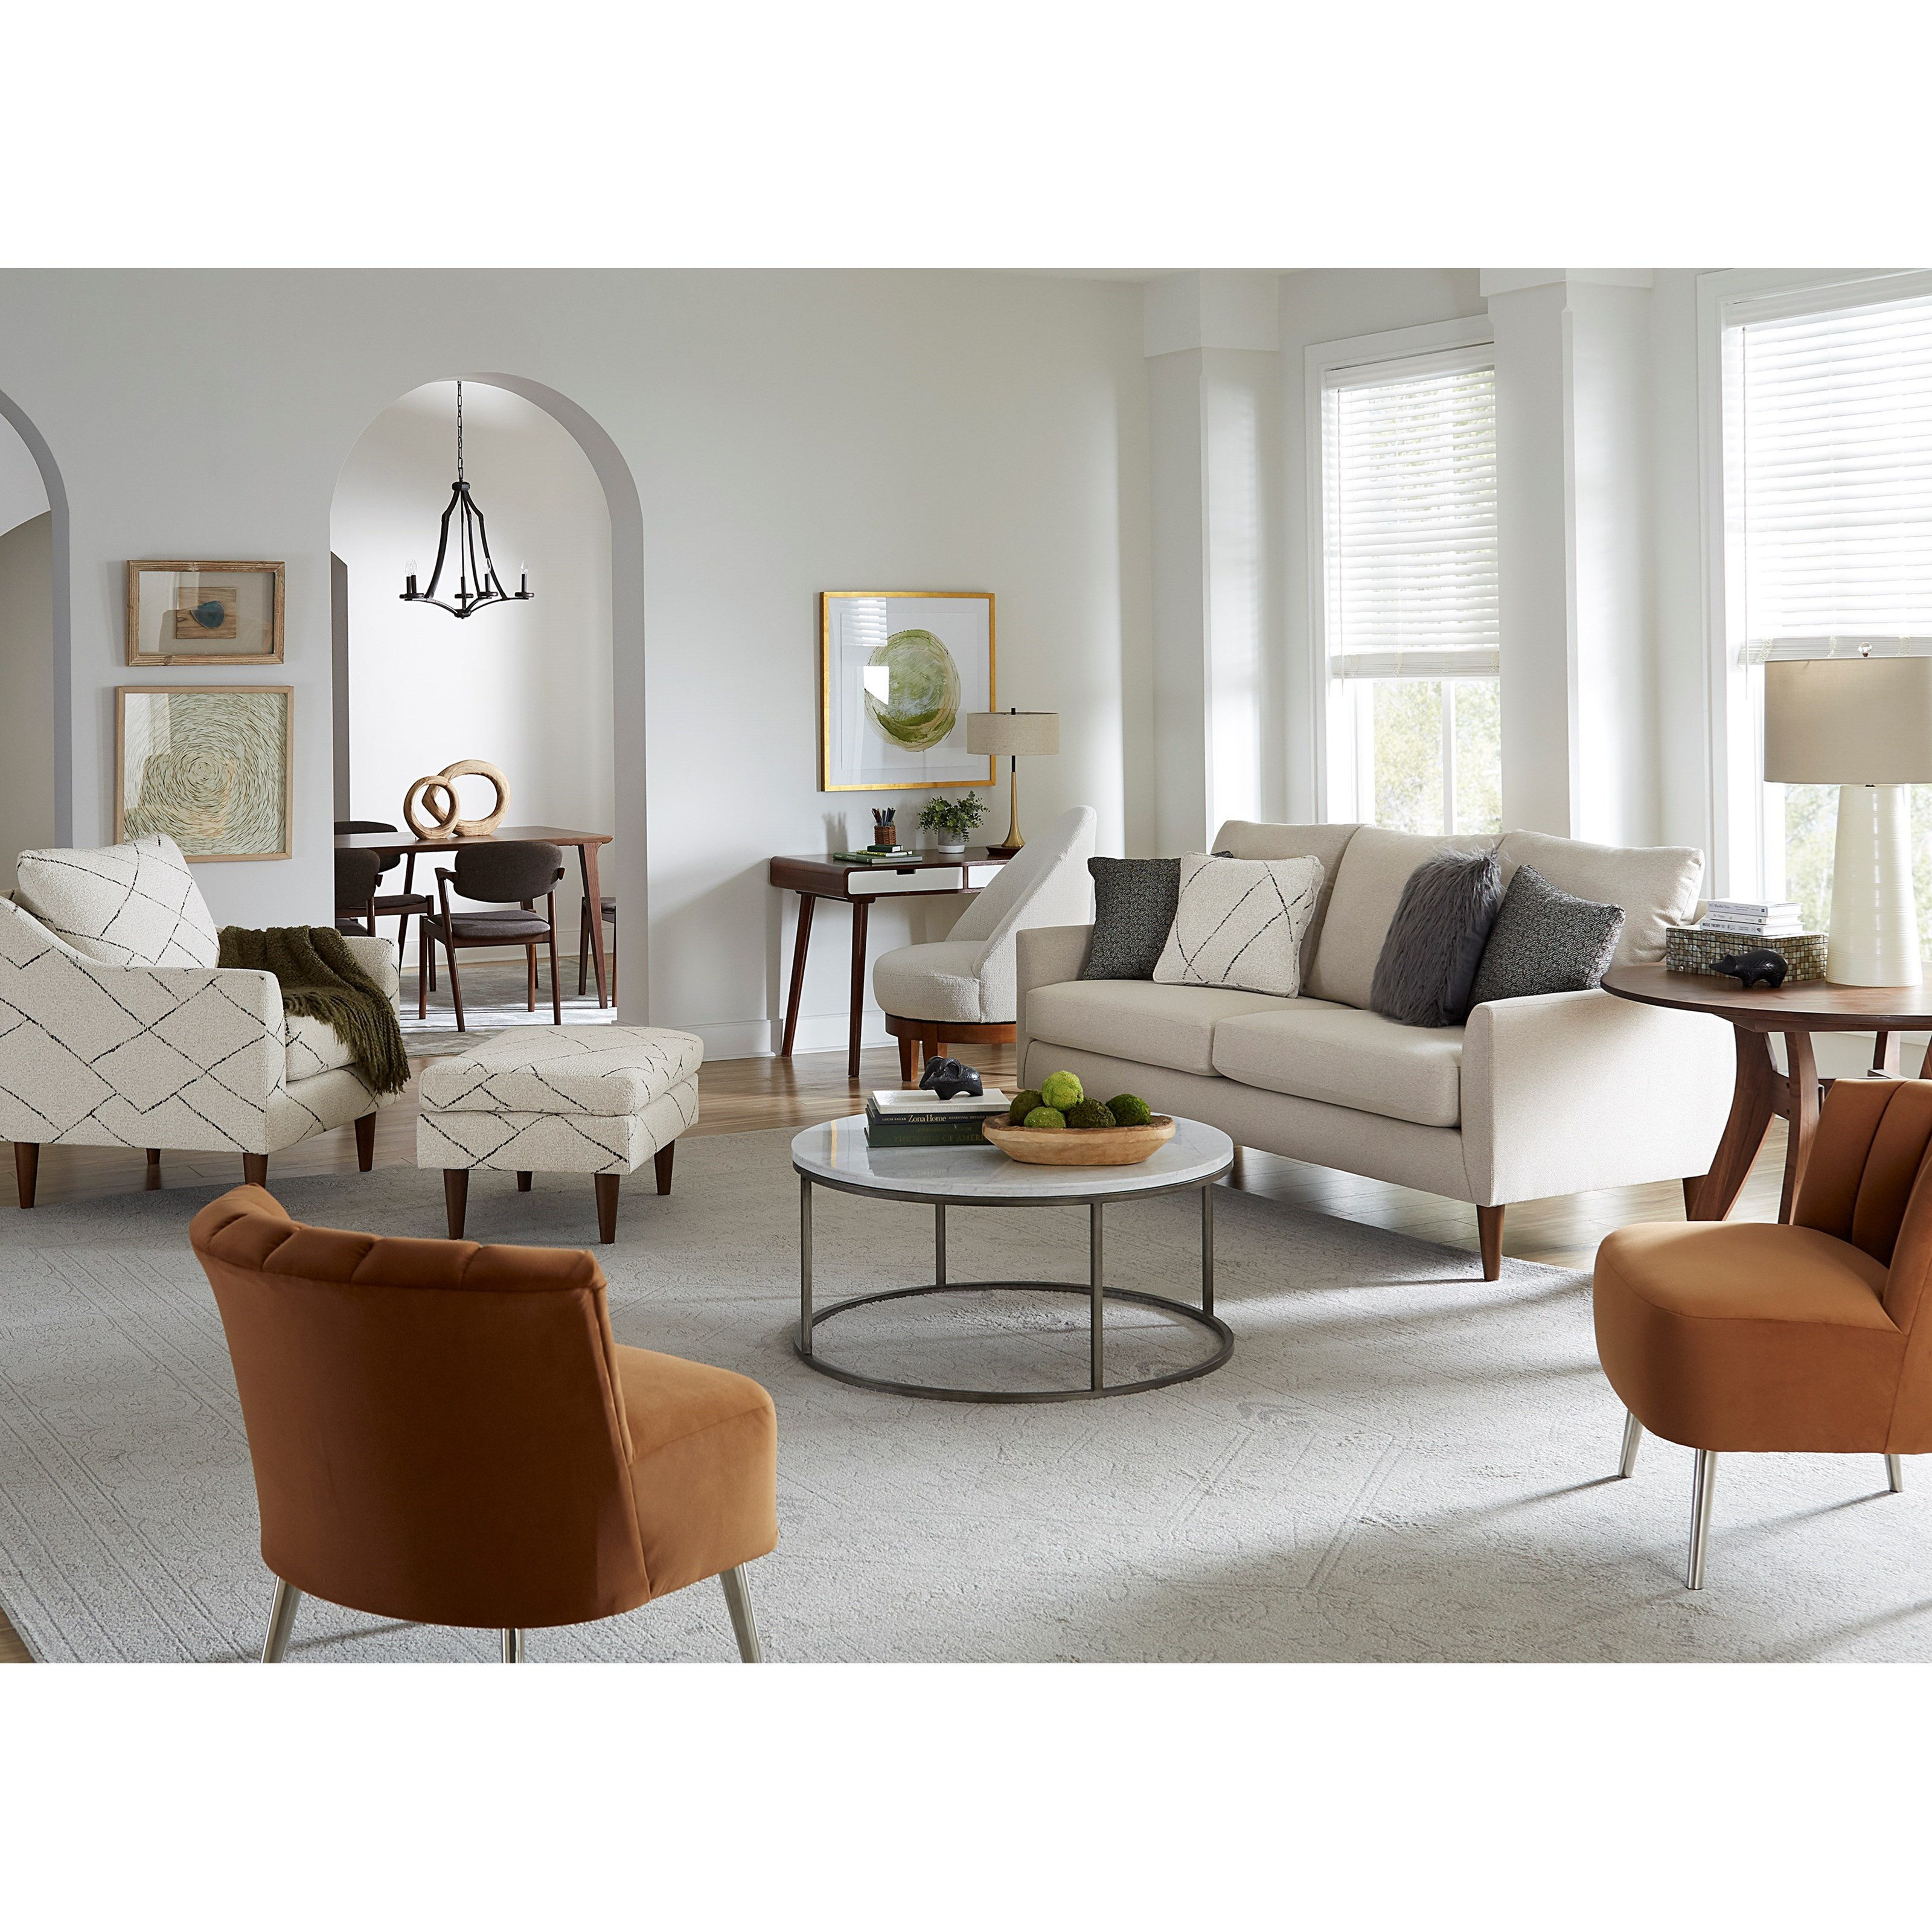 Smitten Stationary Living Room Group by Best Home Furnishings at Bullard Furniture